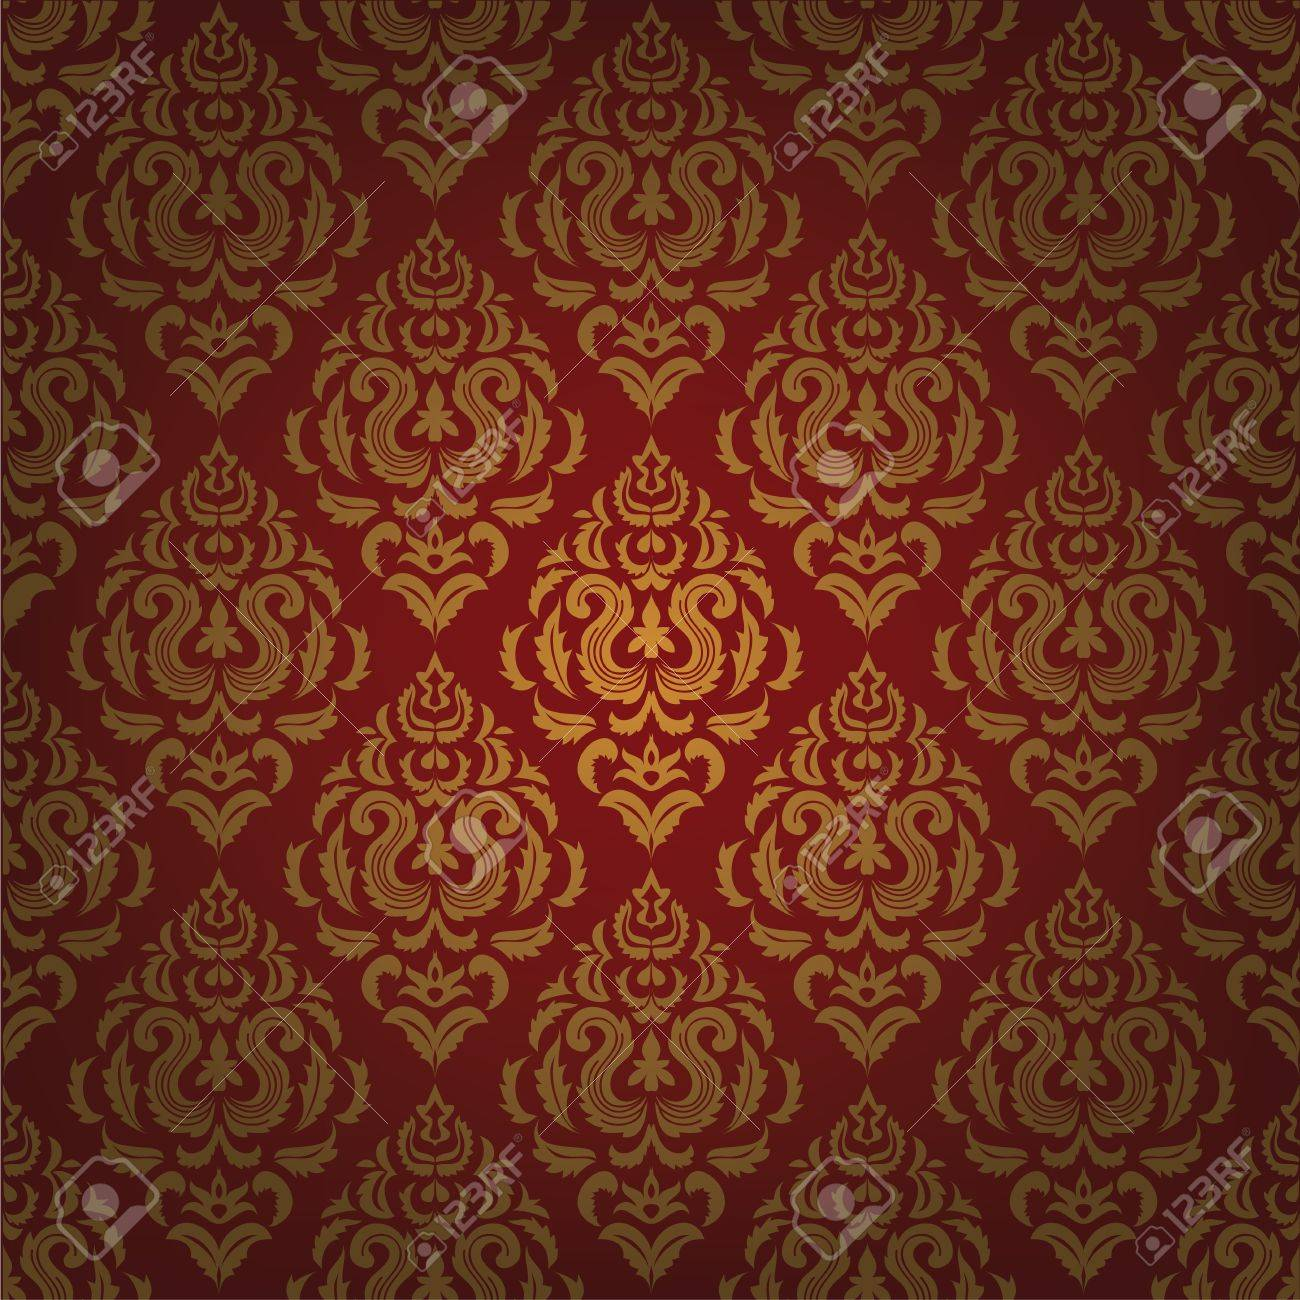 Red Background With Gold Floral Pattern Vintage Wallpaper Stock Vector